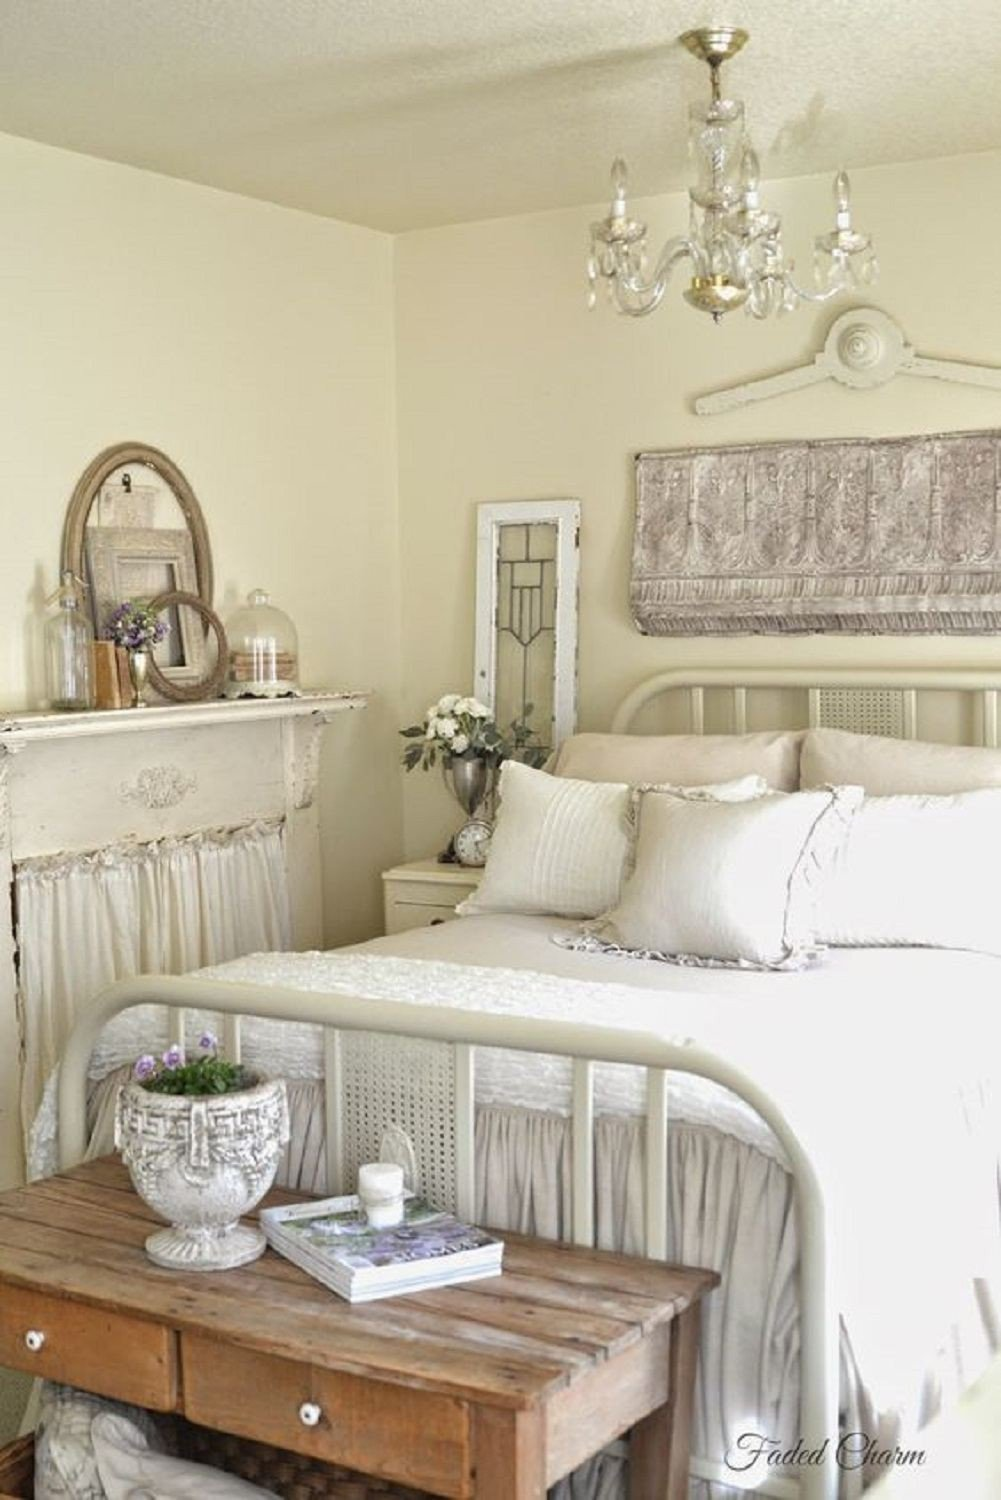 Paris themed Bedroom Decor Best Of Ideas for French Country Style Bedroom Decor